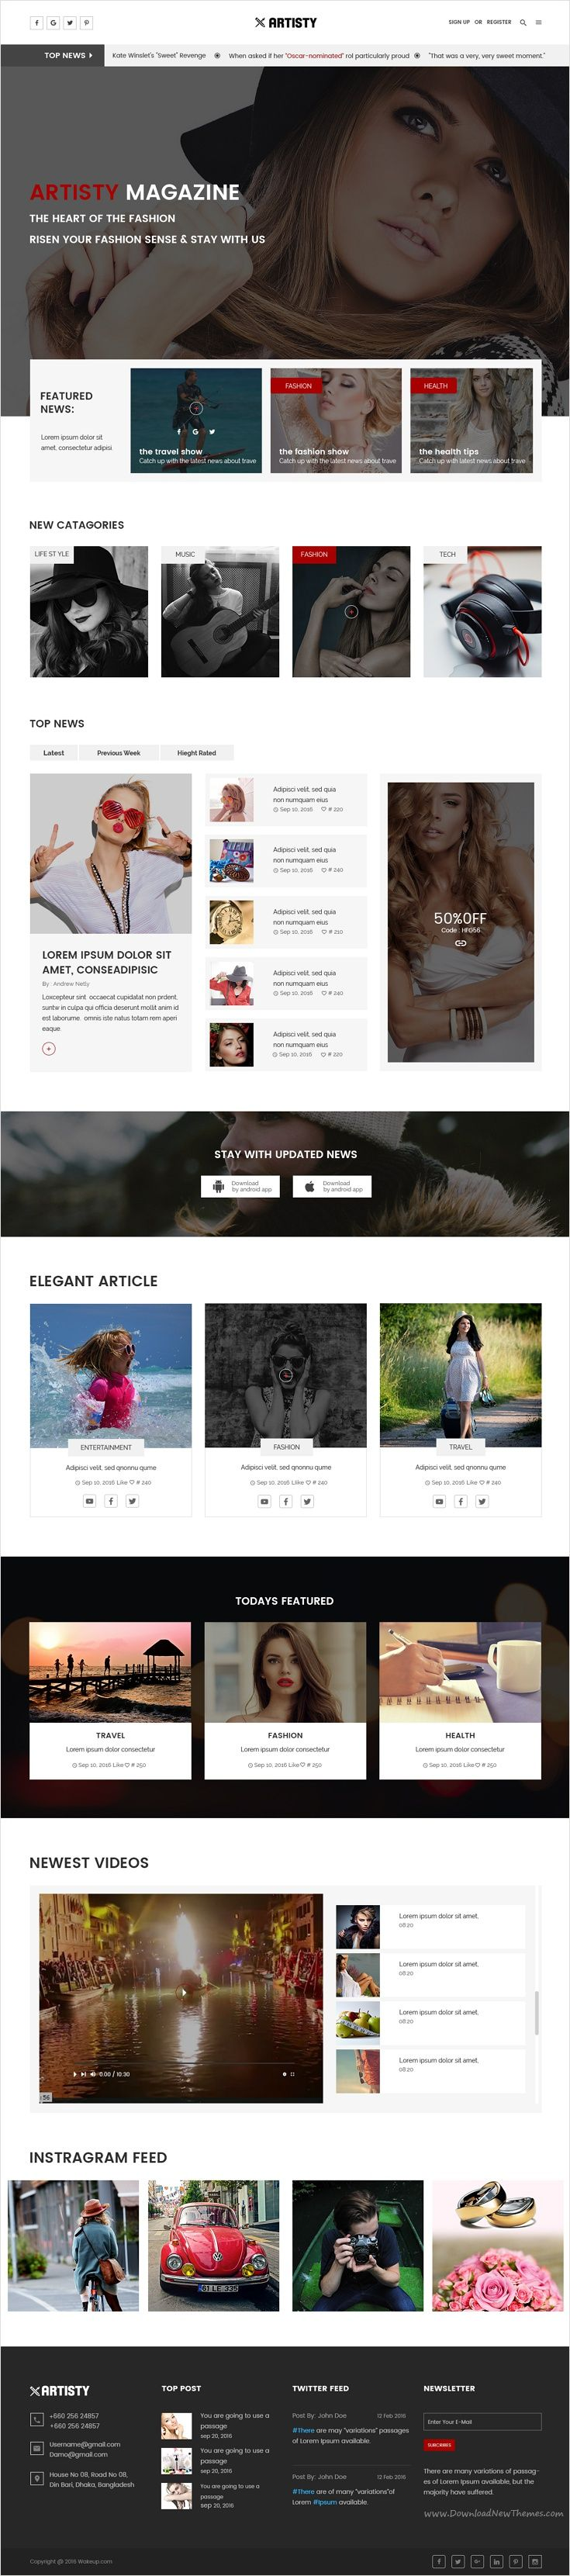 Artisty is a awesome 2 in 1 #PSD #template for online #magazine, blog or news website download now➩ https://themeforest.net/item/artisty-magazine-psd-template/18516287?ref=Datasata